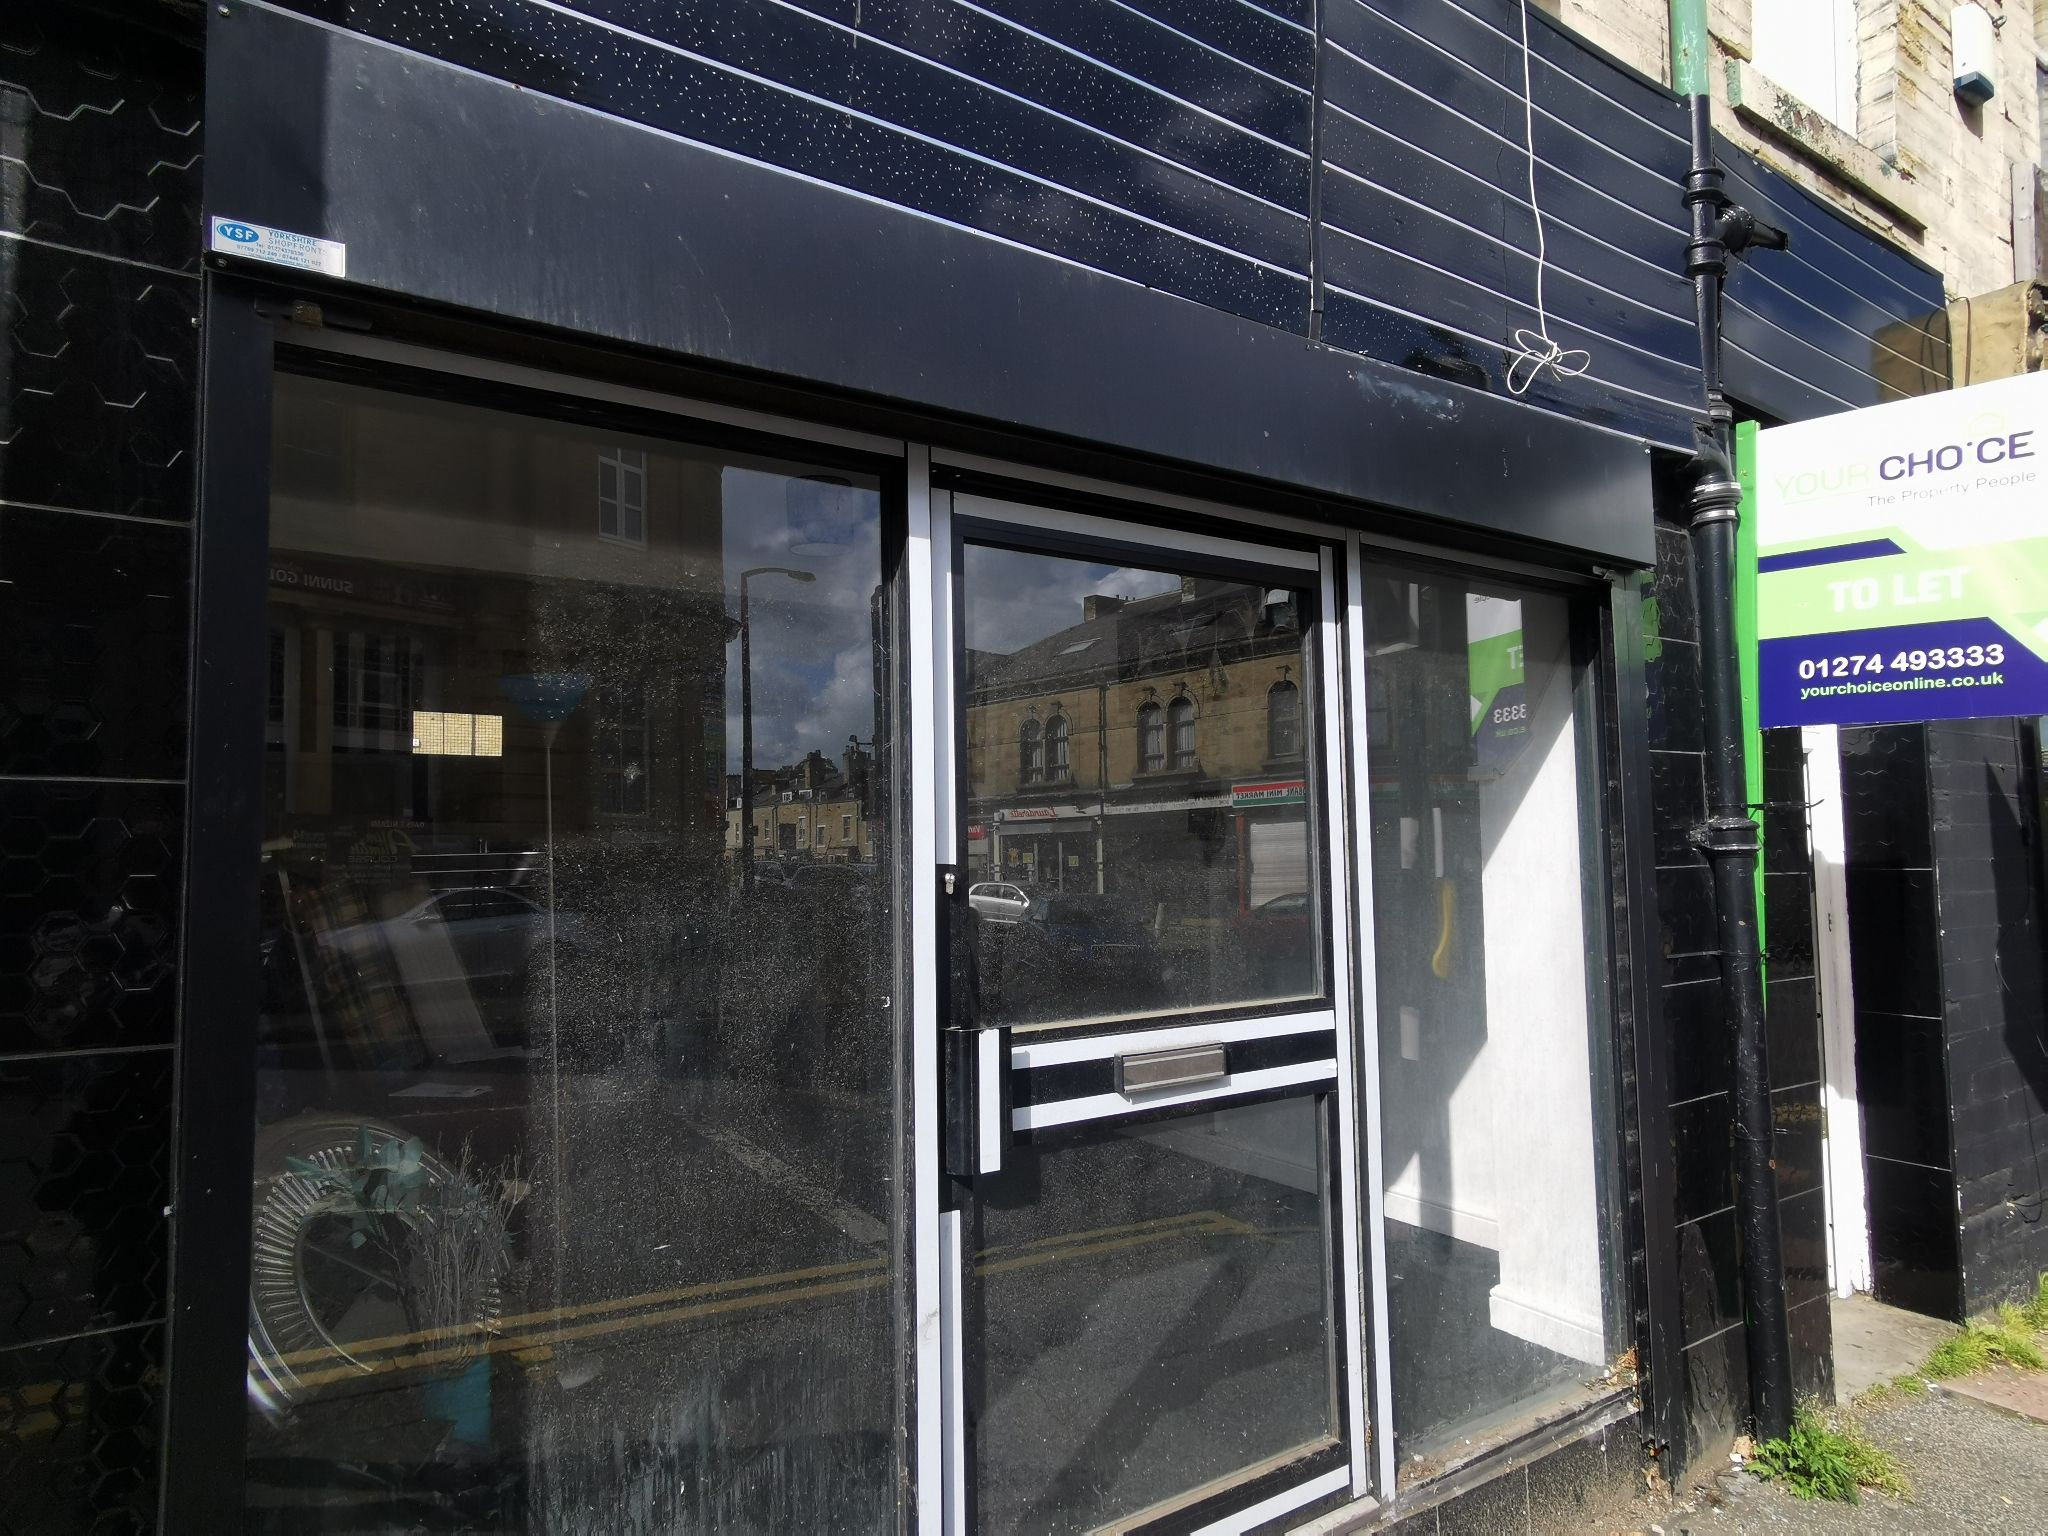 Retail Let Agreed in Bradford - Photograph 1.